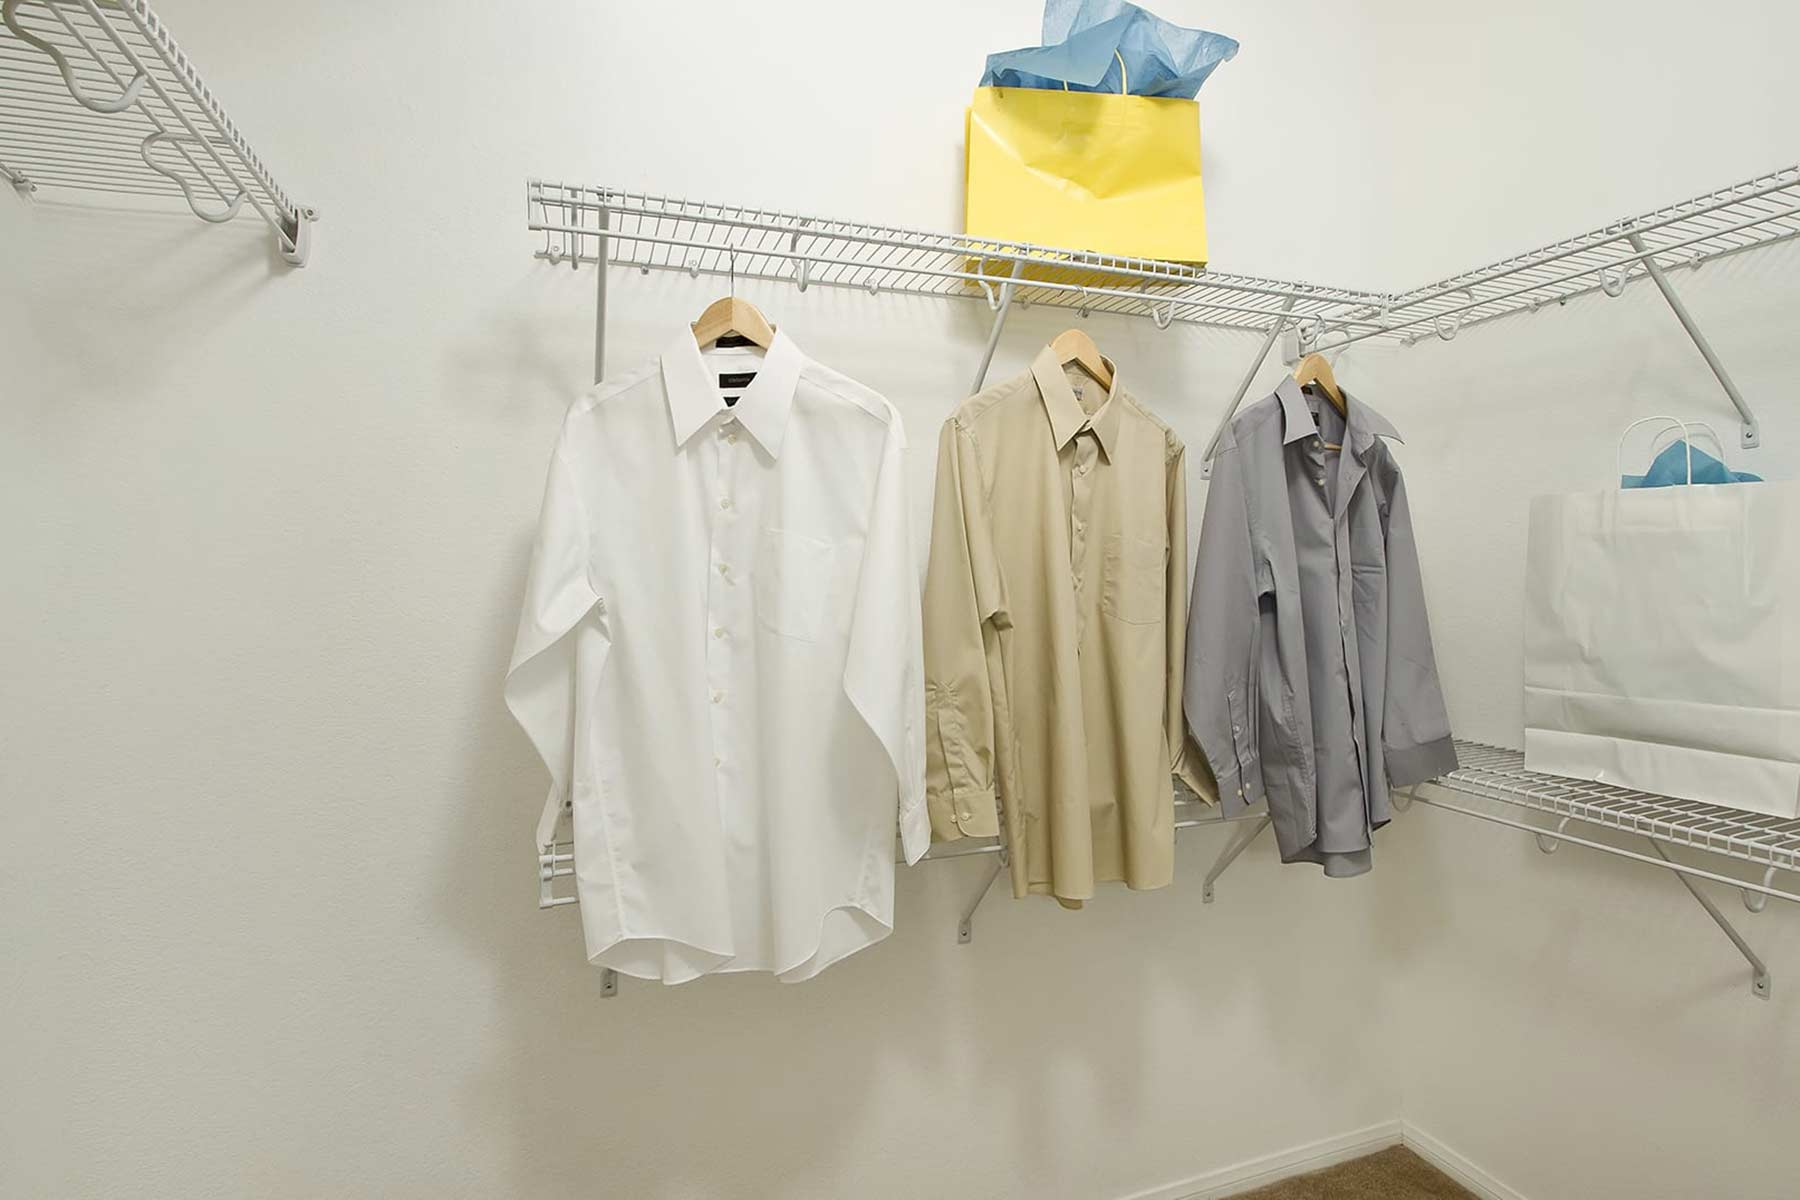 A spacious closet with a selection of shirts and shelves supporting shopping bags.